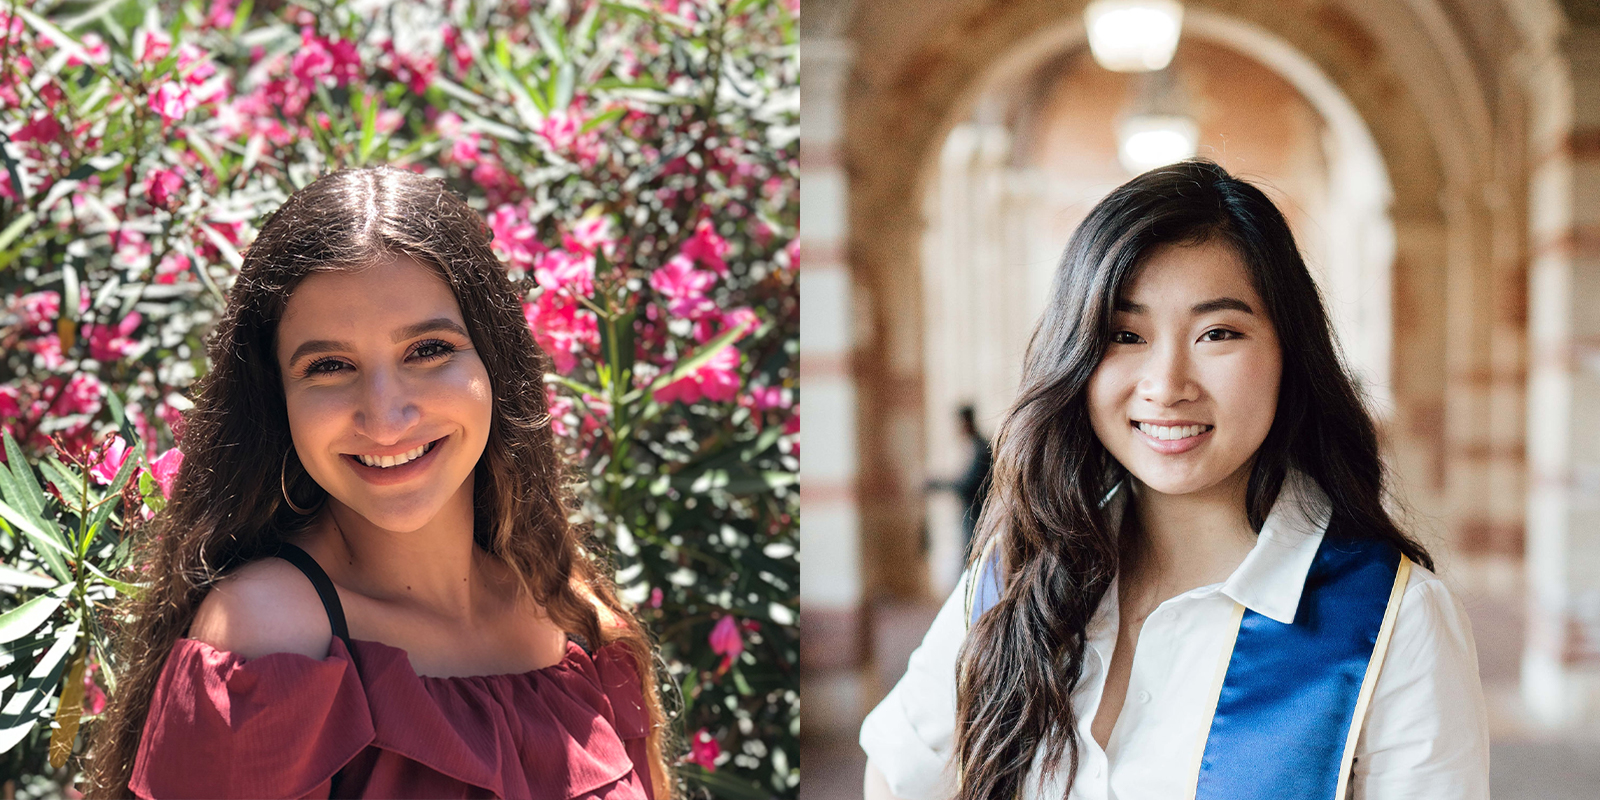 Give a warm welcome to our 2019 summer interns!